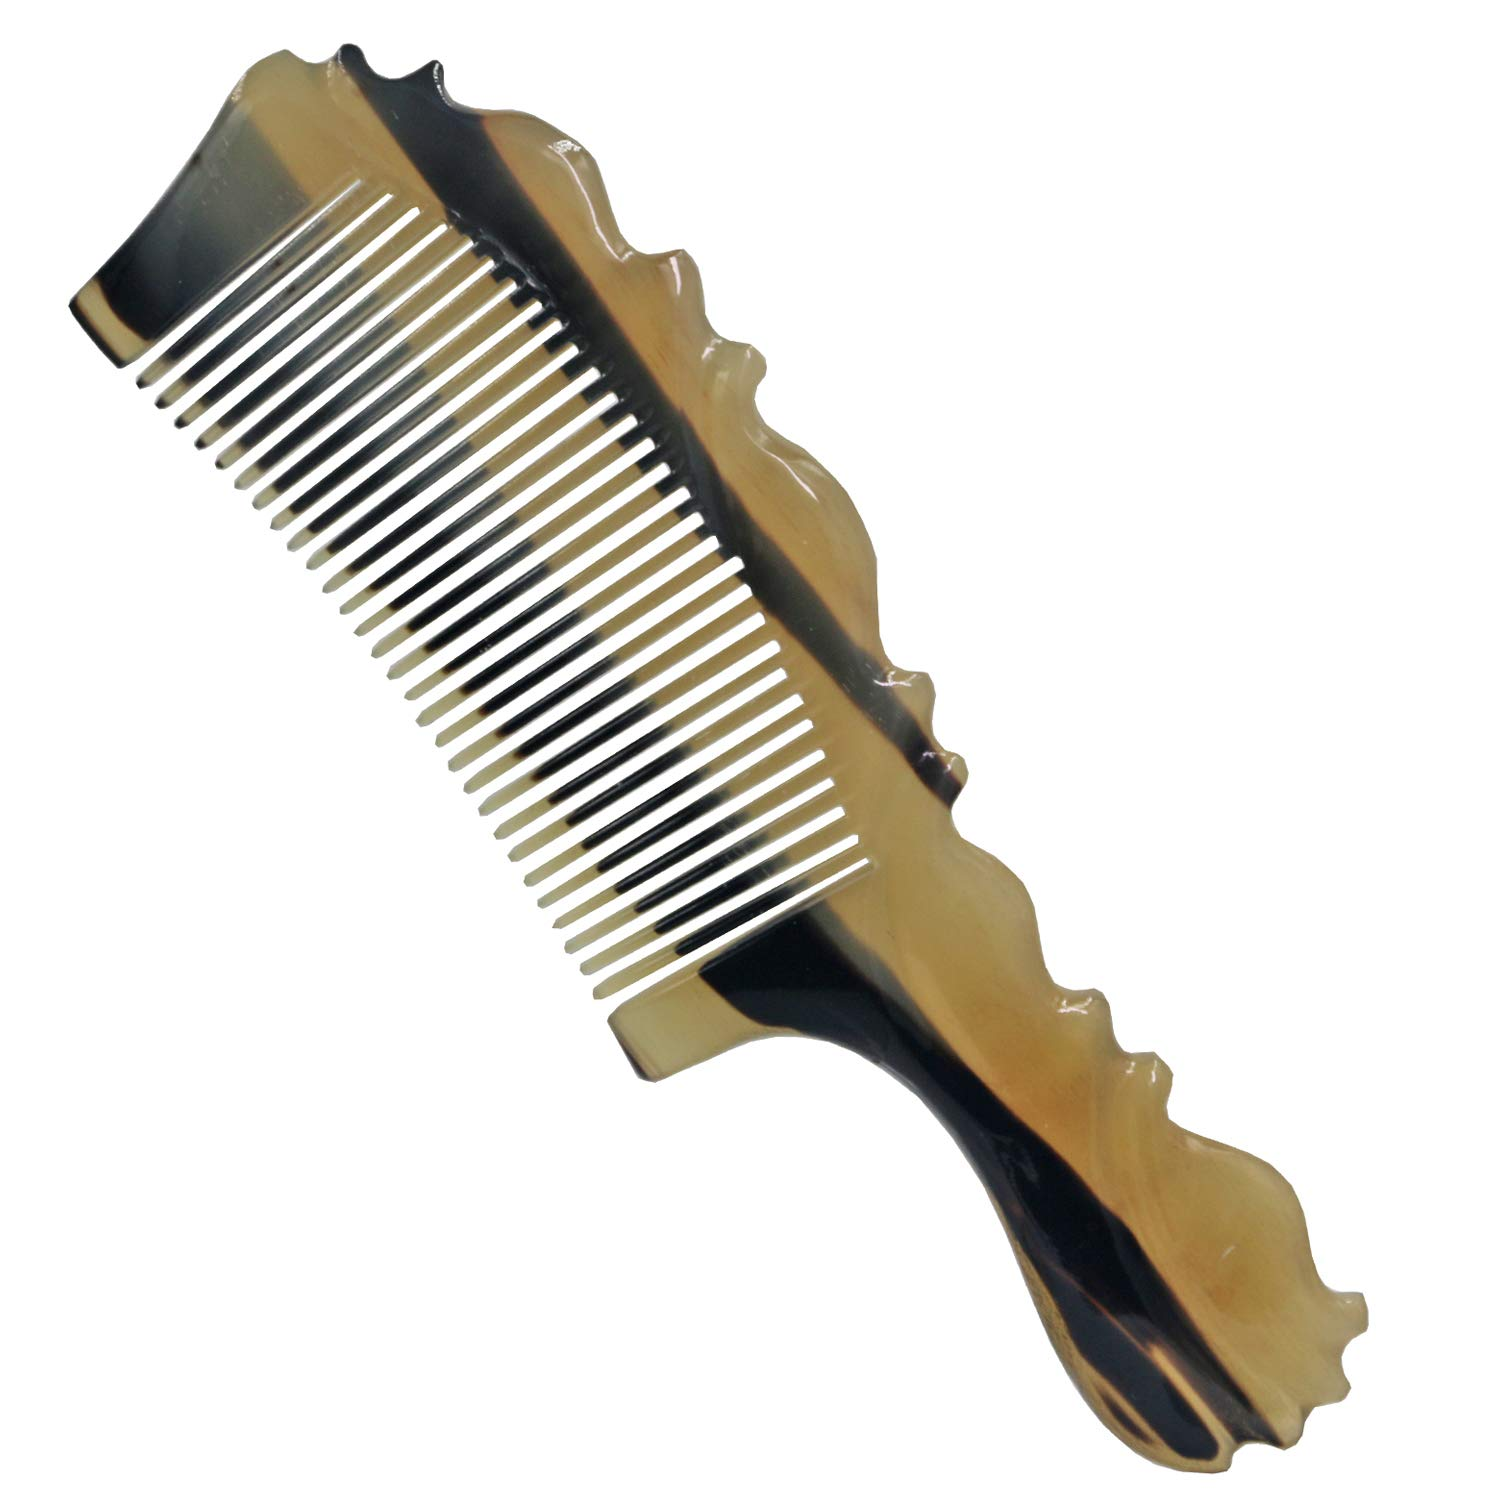 Fine Tooth Comb-100% Handmade Premium Quality Natural Sheep Horn Comb by Honglays